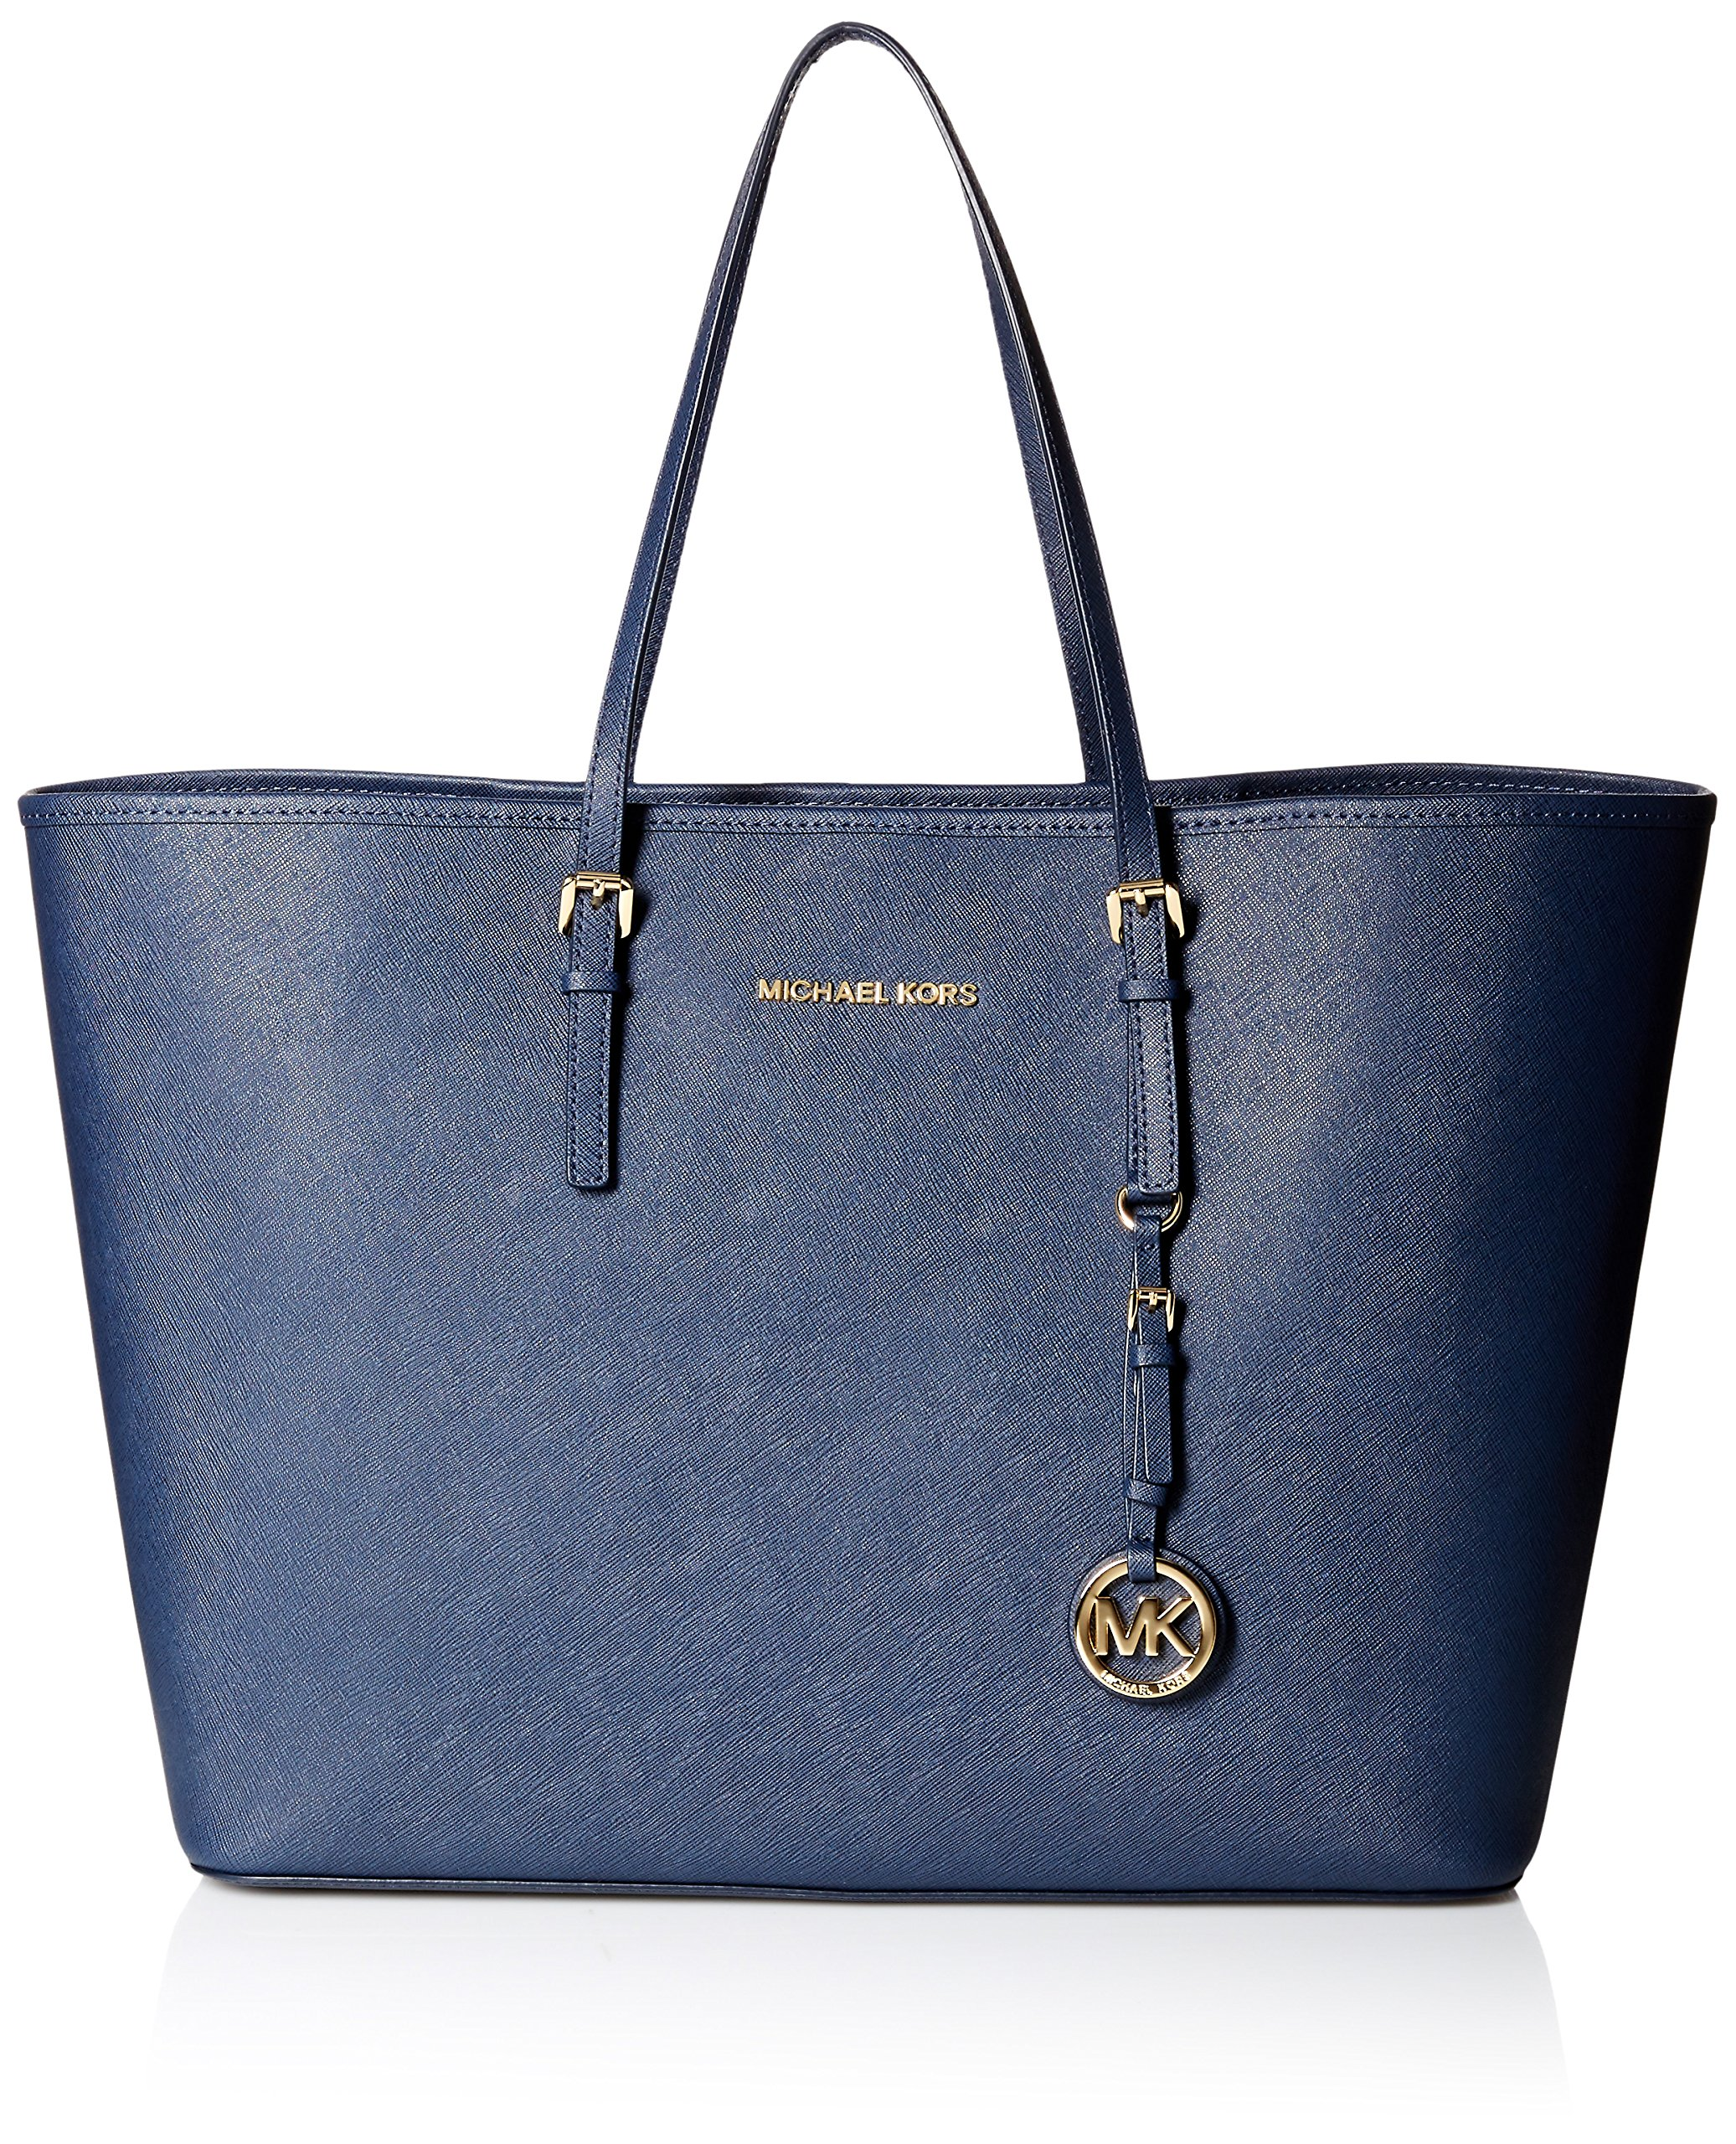 Michael Kors Jet Set Large East/West Travel Tote, Navy